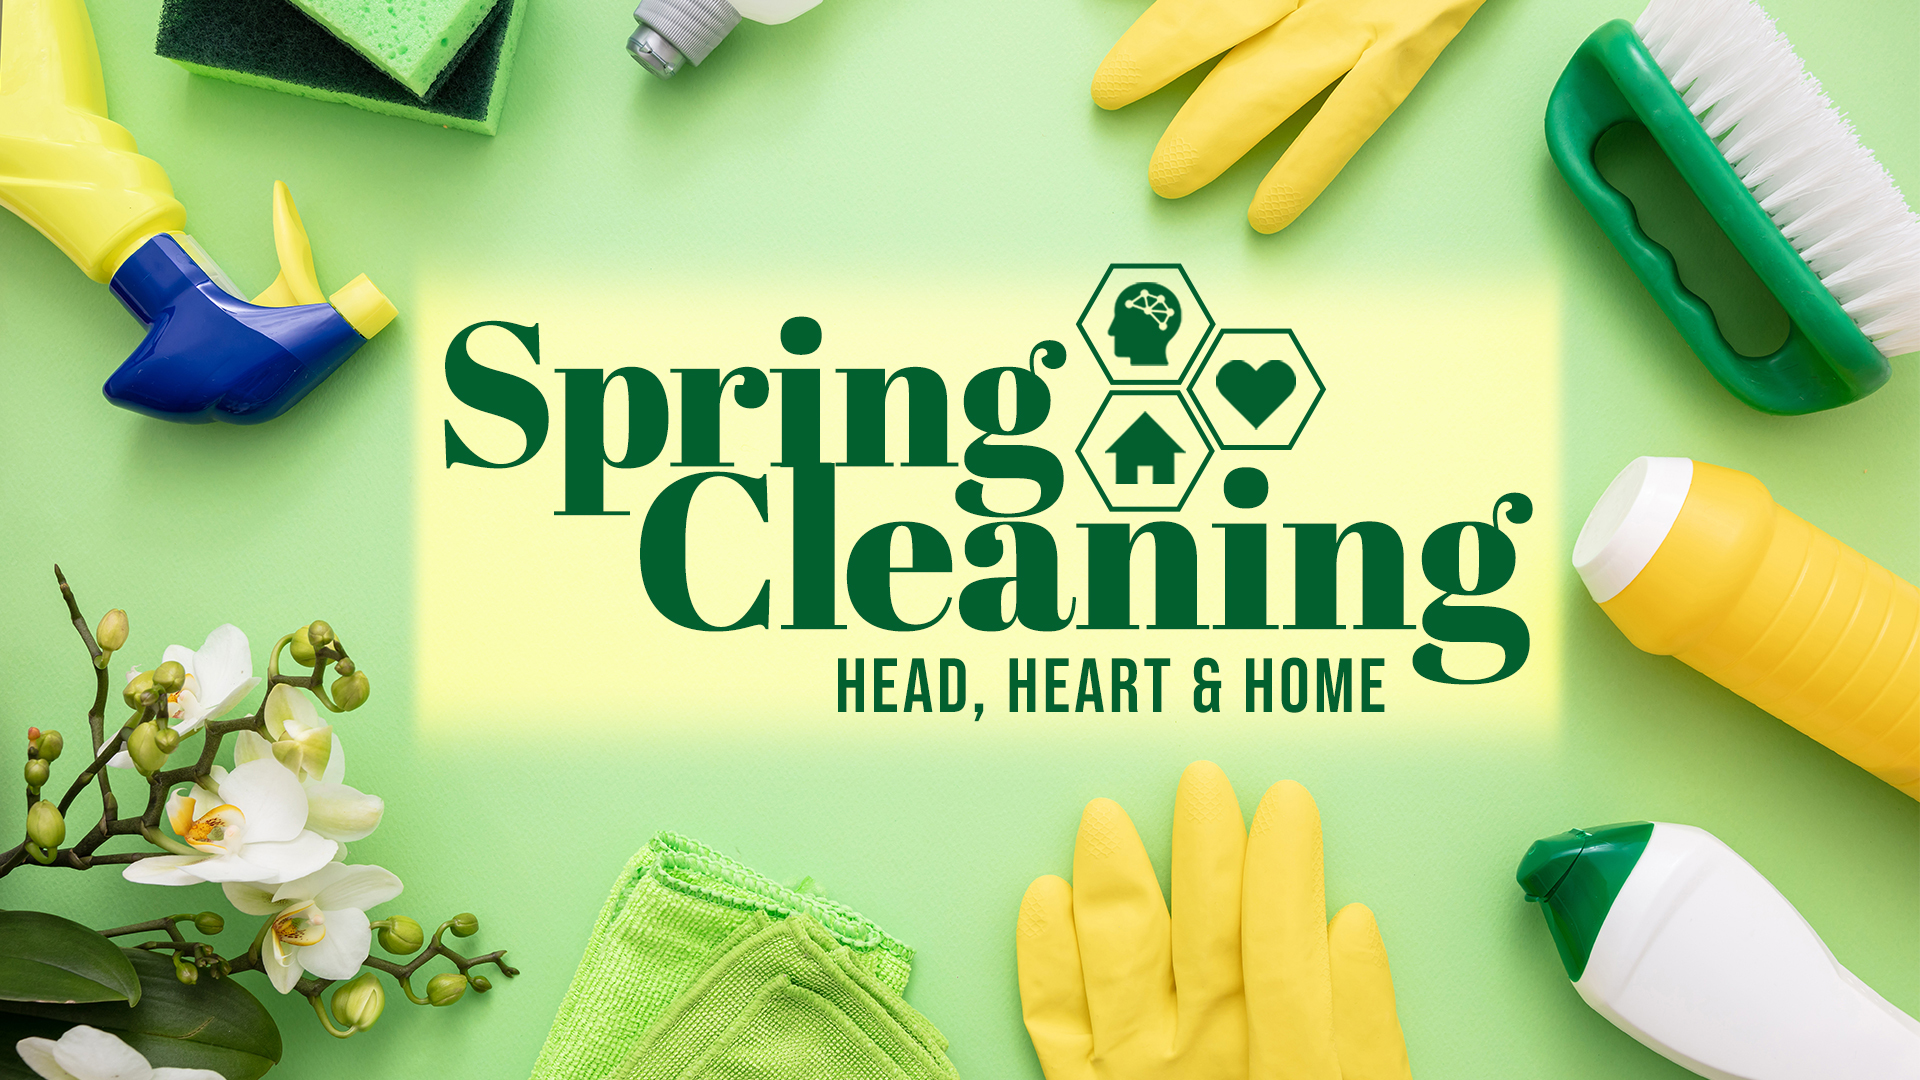 Spring Cleaning: Head, Heart & Home